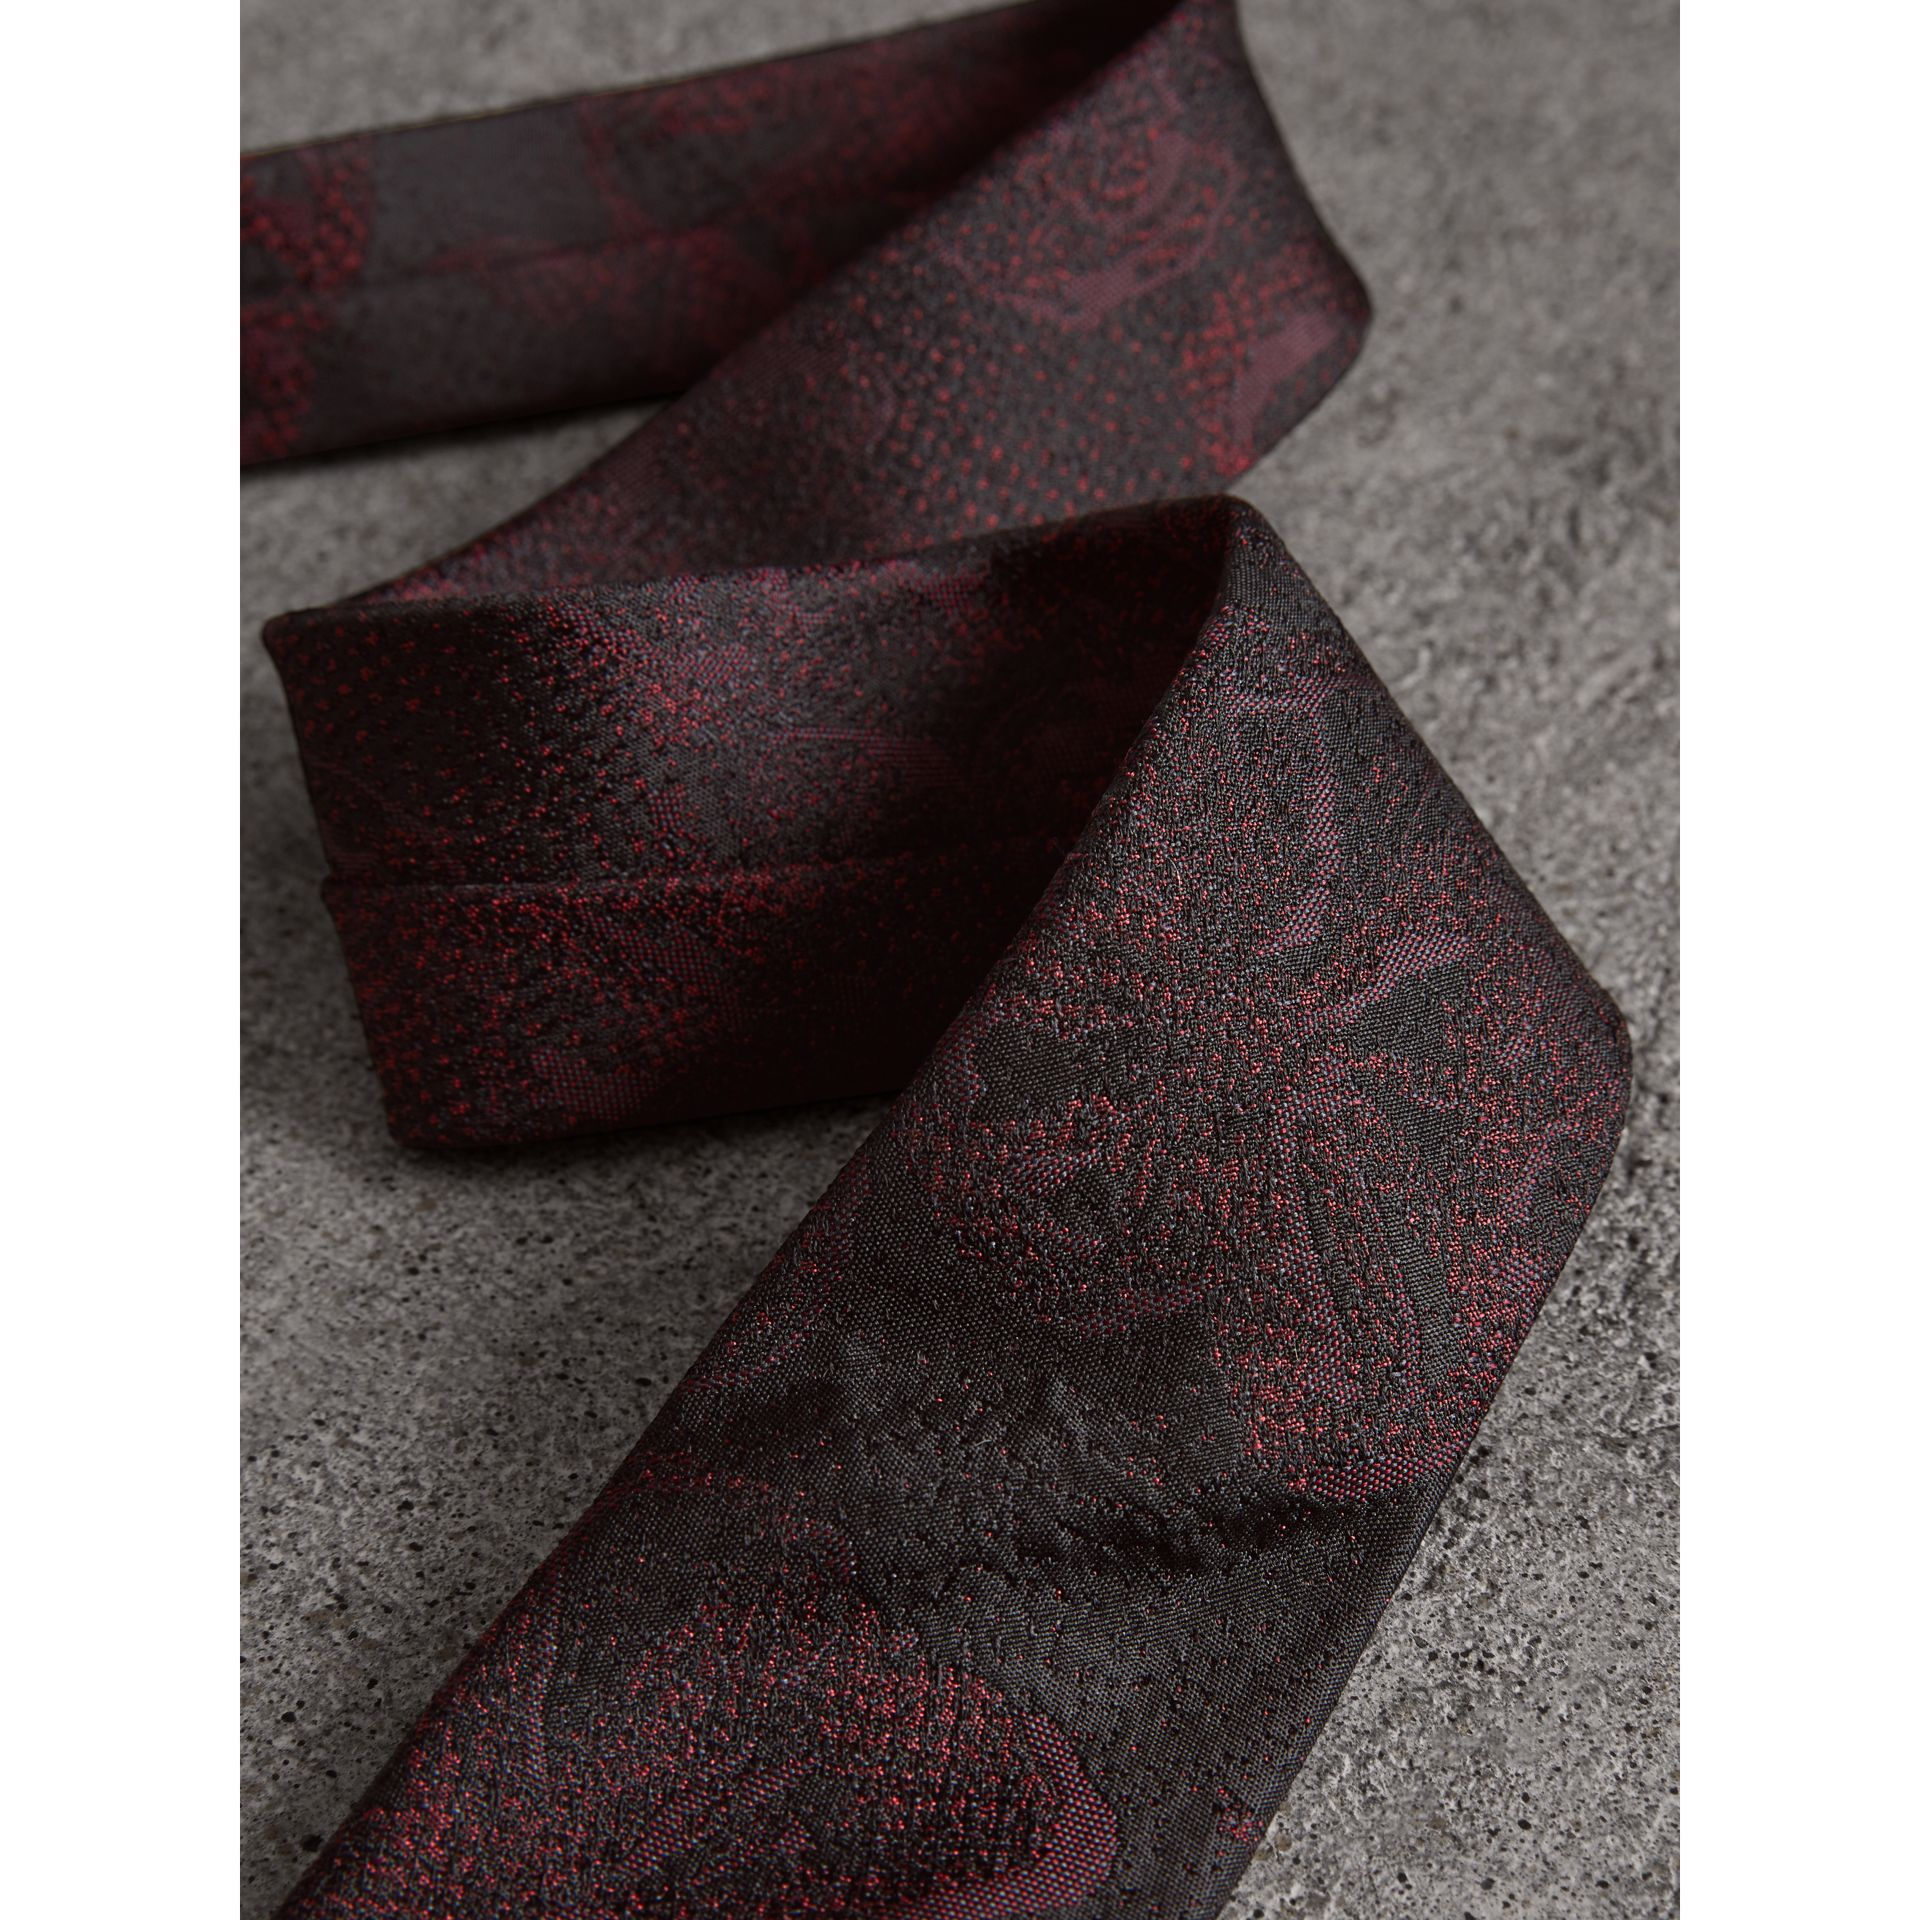 Slim Cut Floral Silk Jacquard Tie in Deep Claret - Men | Burberry - gallery image 1